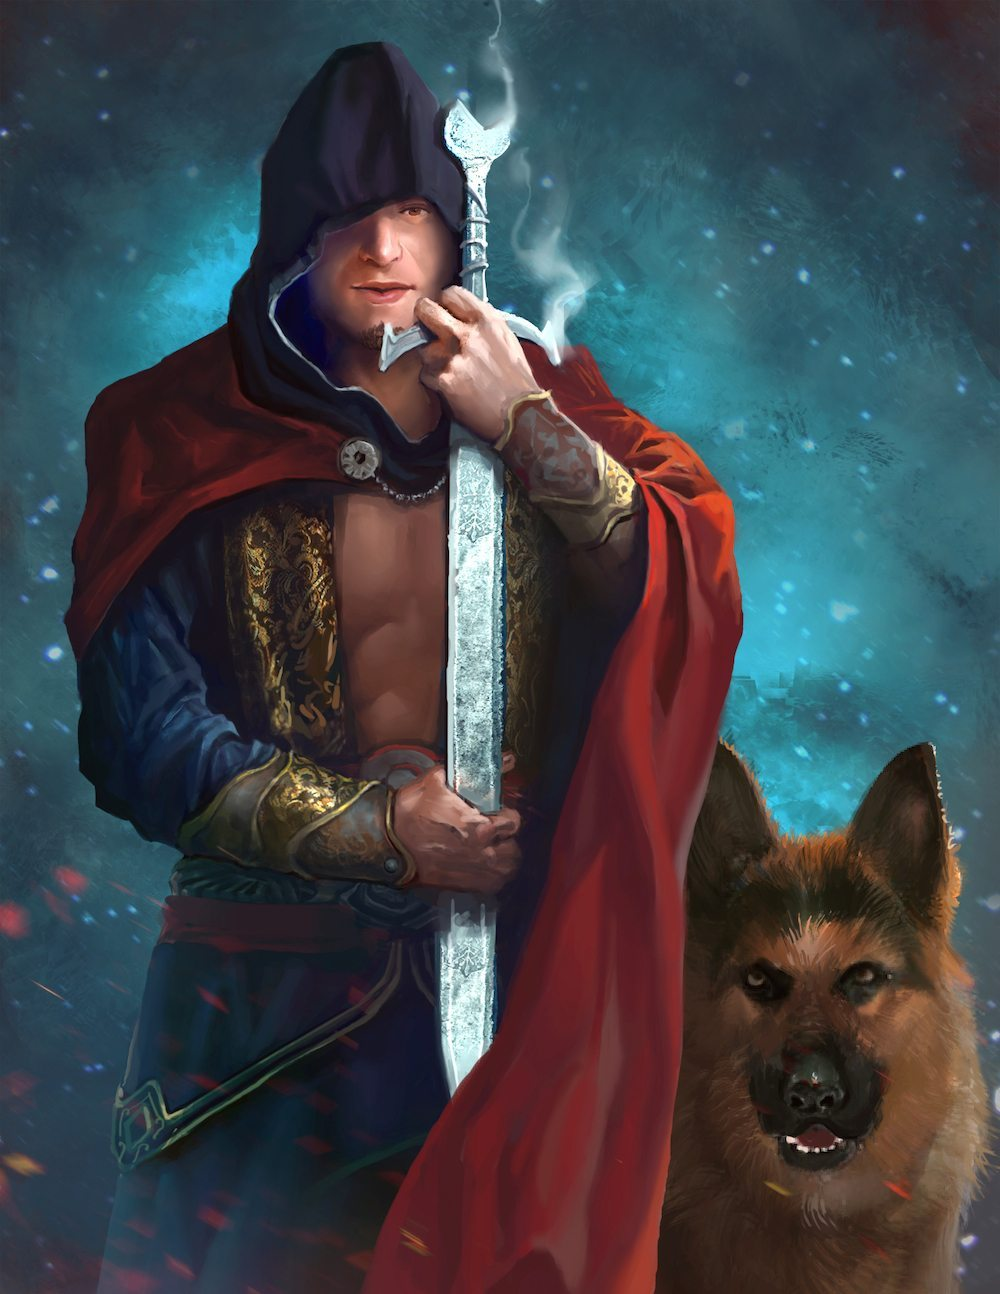 Carlo the Assassin by Bloodyman88 on ArtCorgi